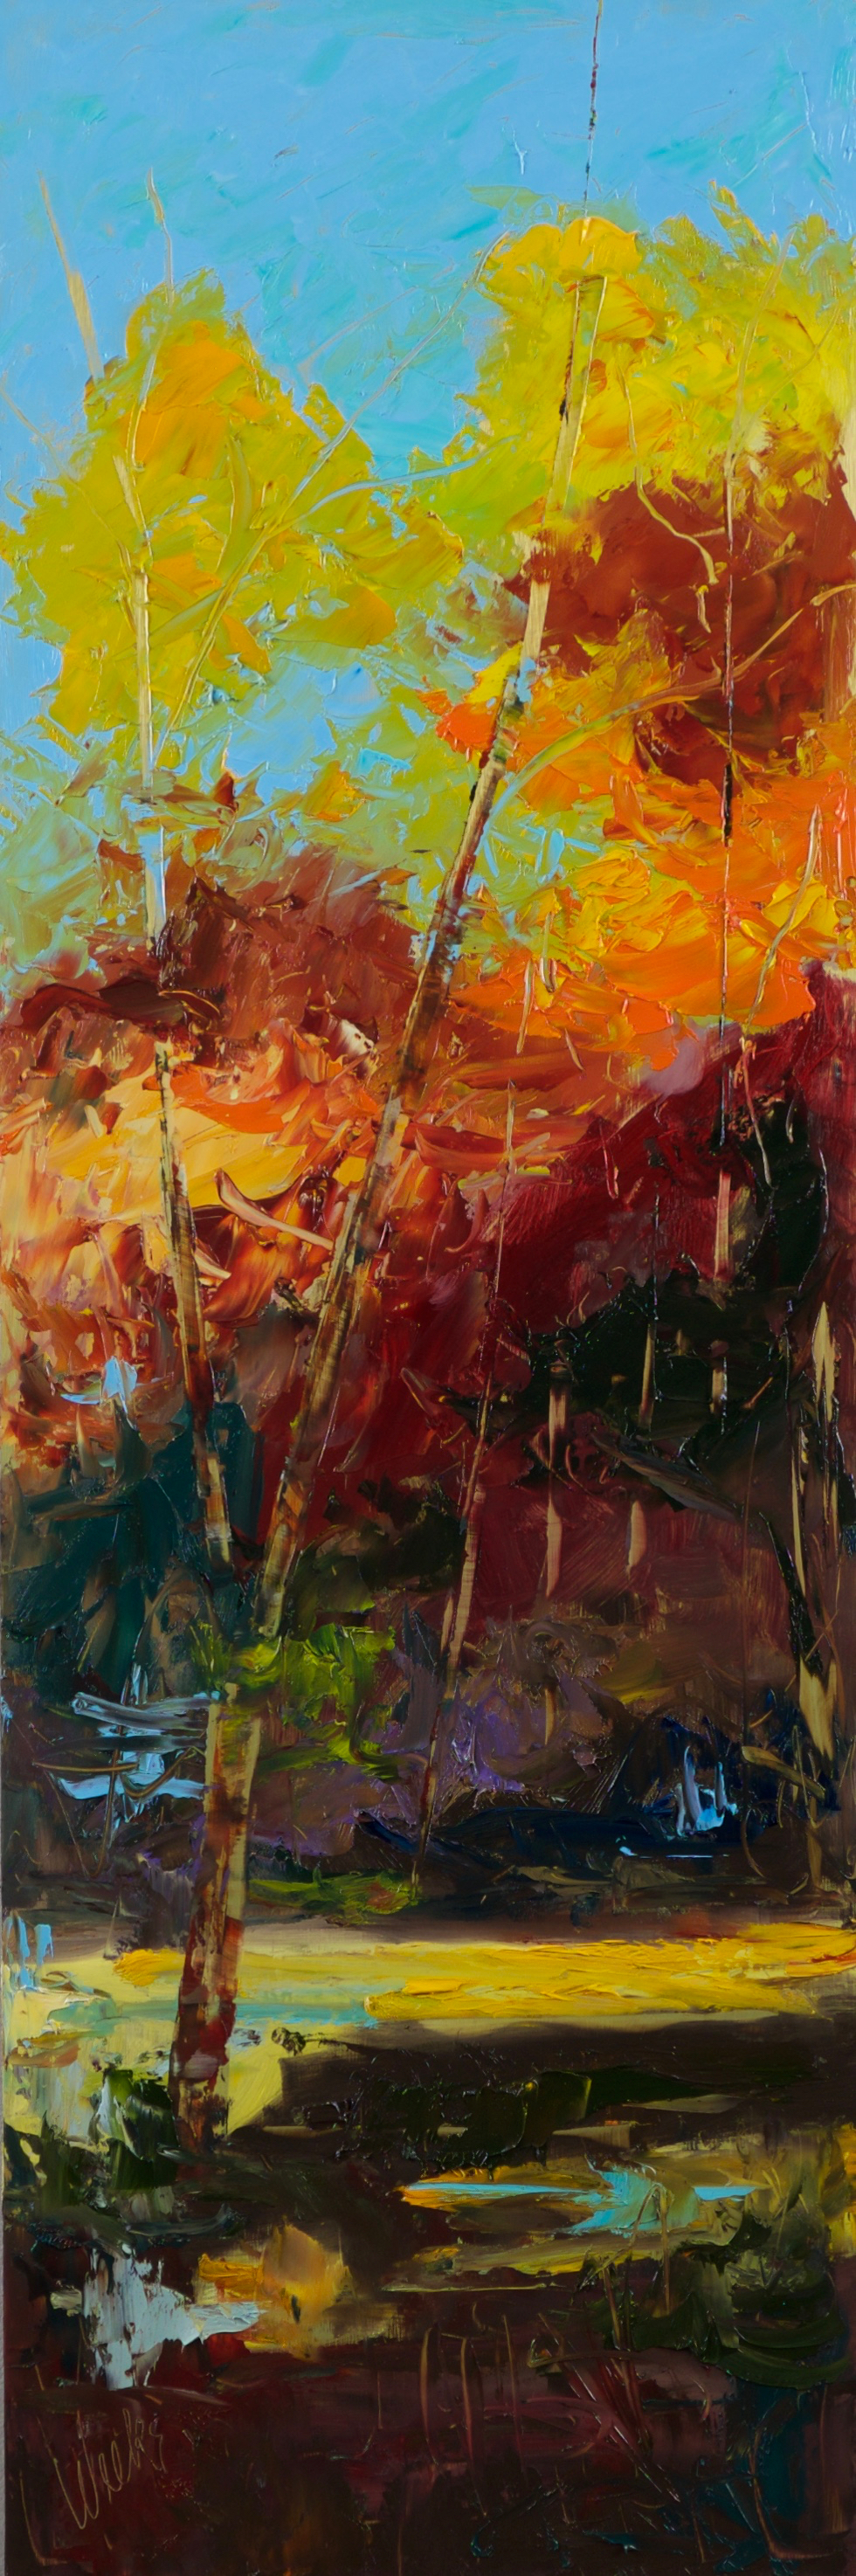 """Secrets of the Forest #1"" - 36 x 12 inch"